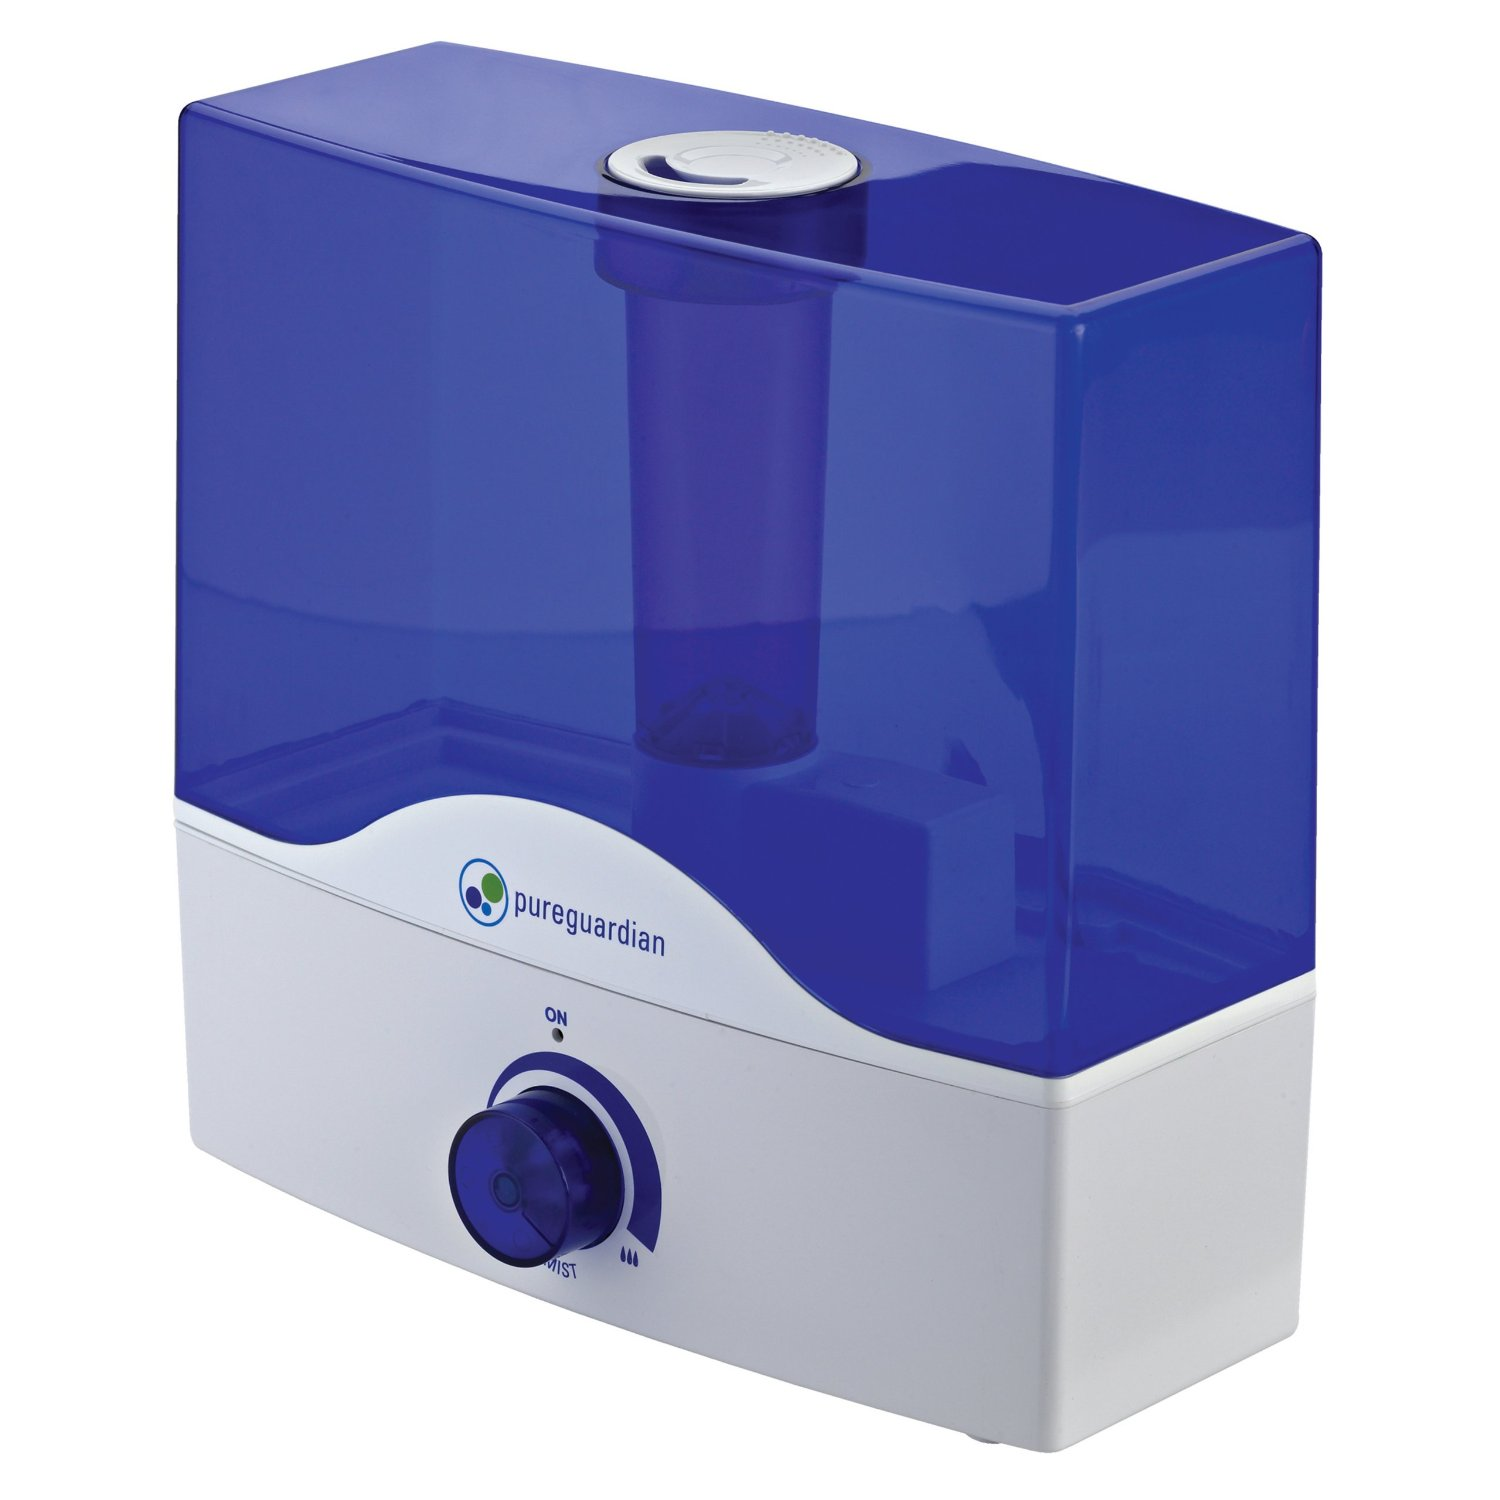 Pureguardian Ultrasonic Humidifier Reviews 2015 2016 #17143F